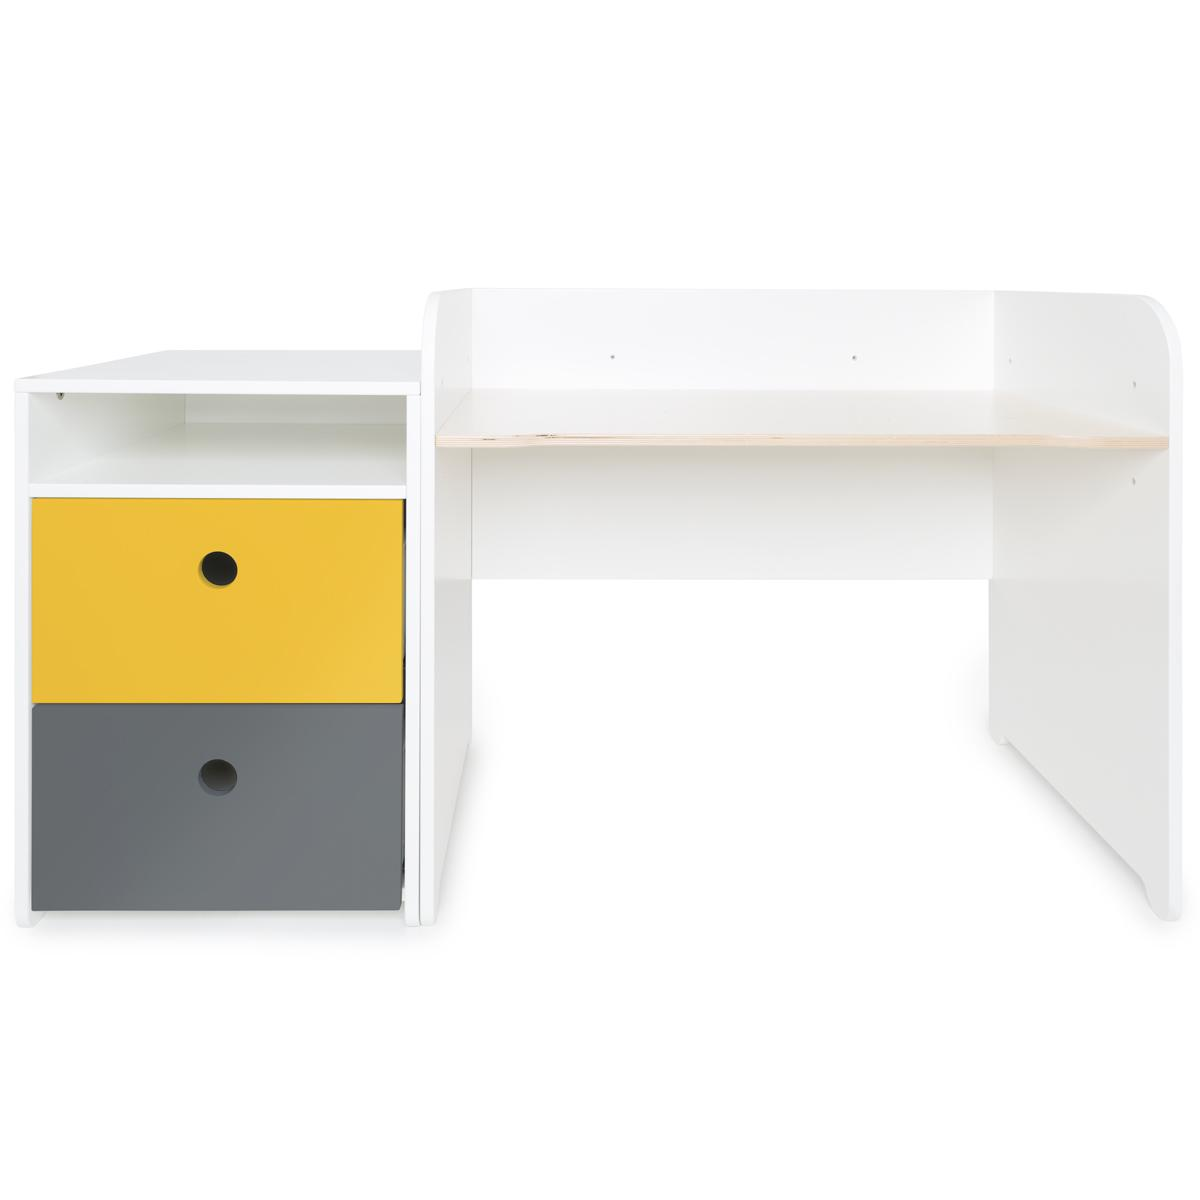 Escritorio evolutivo-mueble pequeño 2 cajones COLORFLEX Abitare Kids nectar yellow-space grey